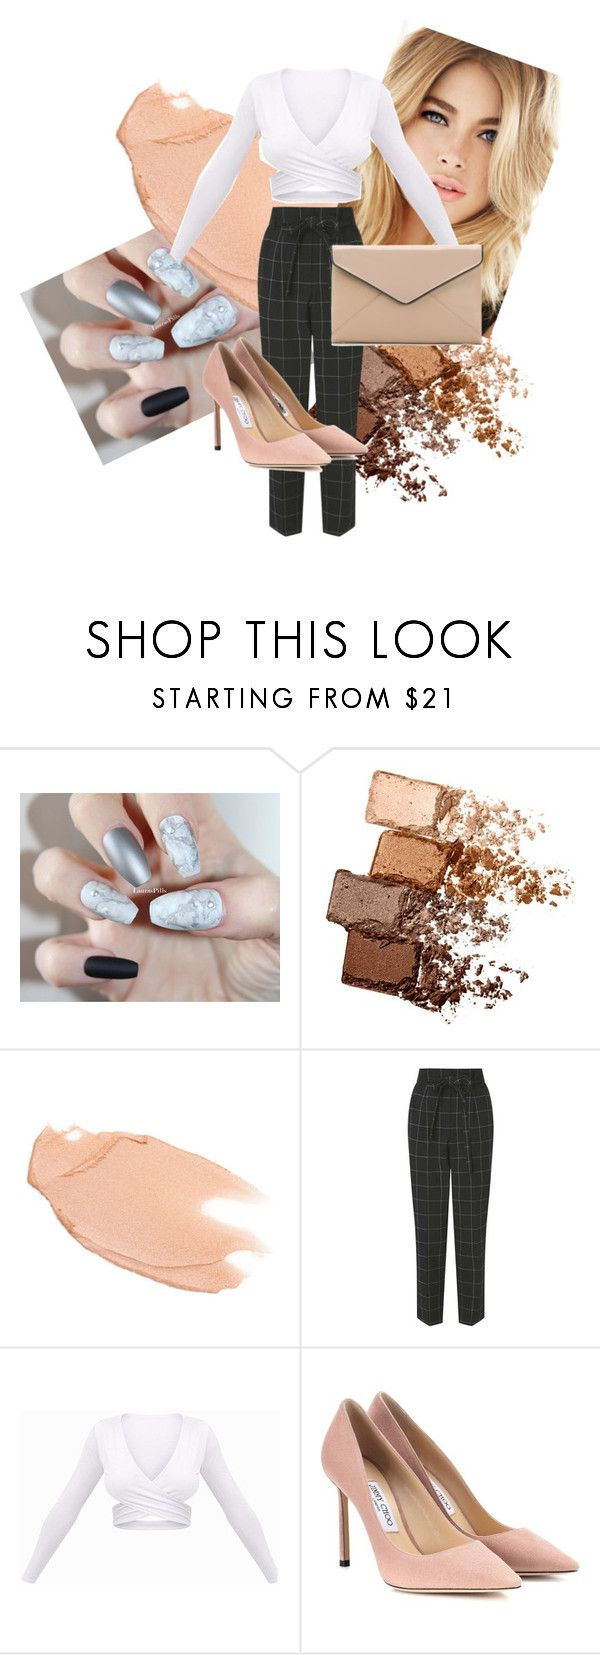 """""""basic pub lunch outfit"""" by dress-like-your-going-out-out ❤ liked on Polyvore featuring Maybelline, Too Faced Cosmetics, Miss Selfridge, Jimmy Choo and La Diva"""